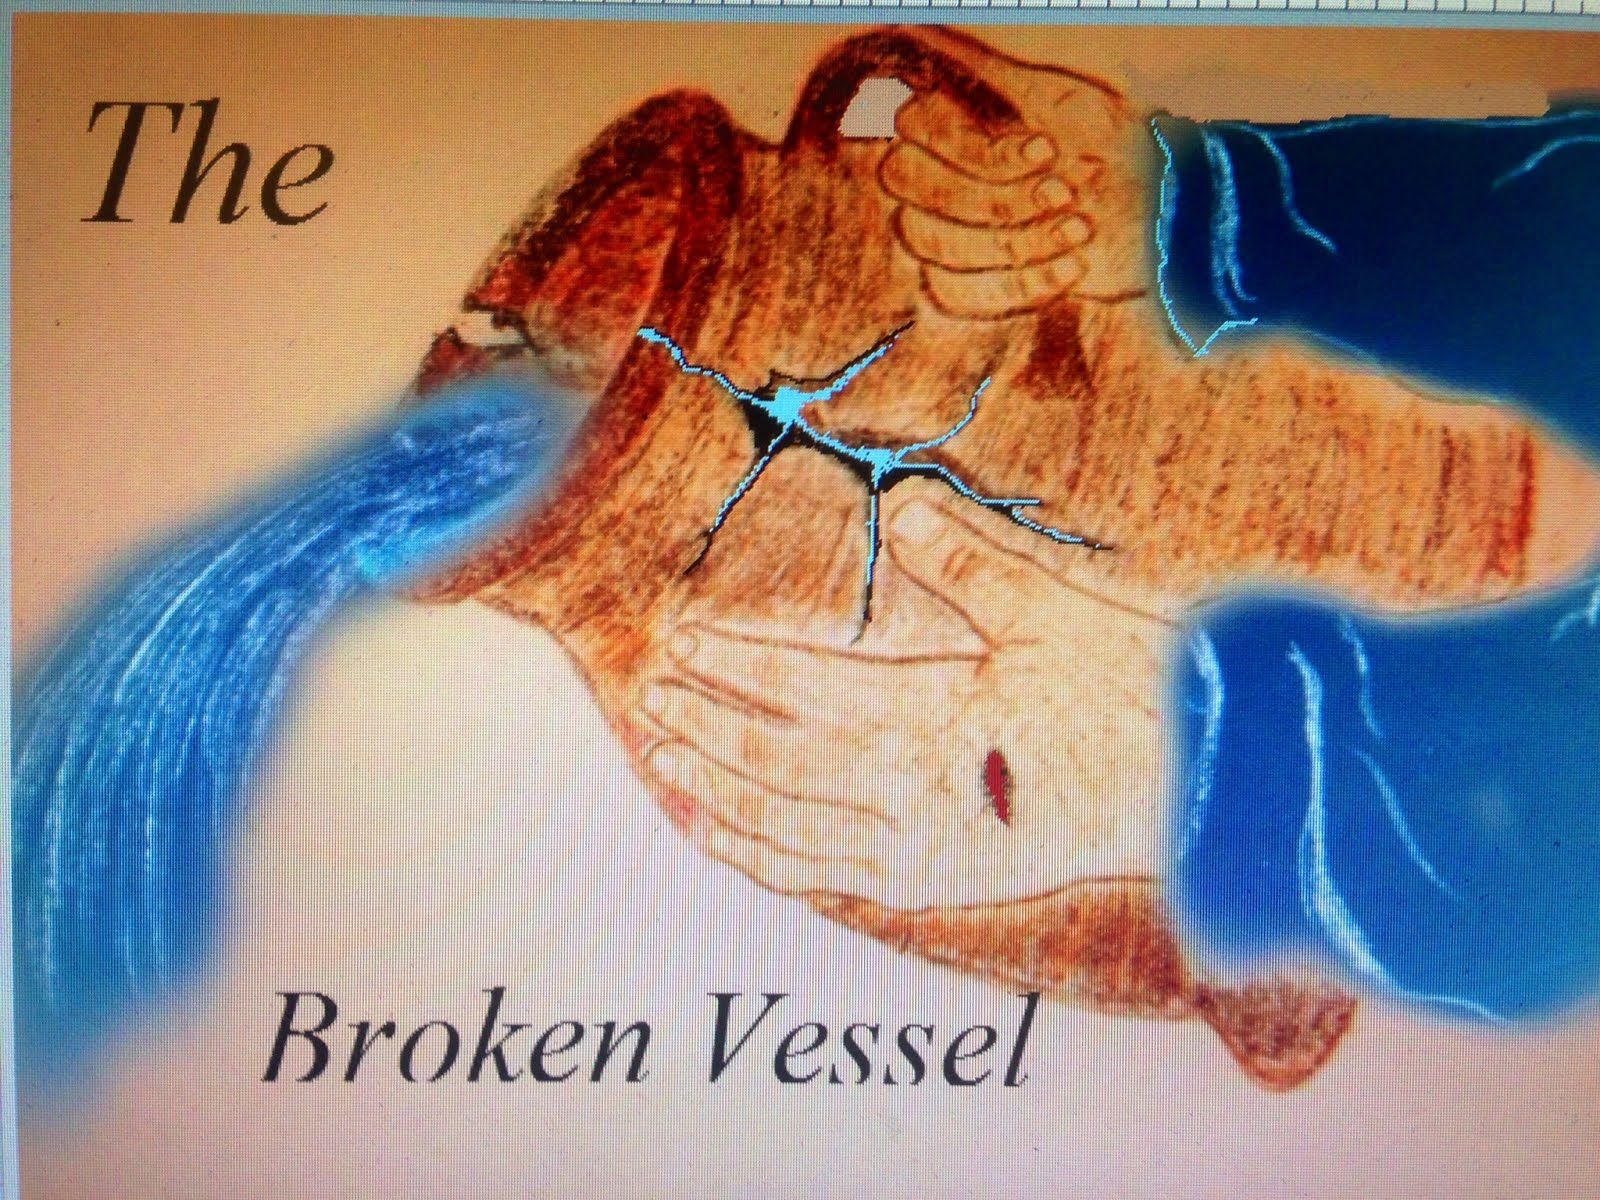 The Broken Vessel